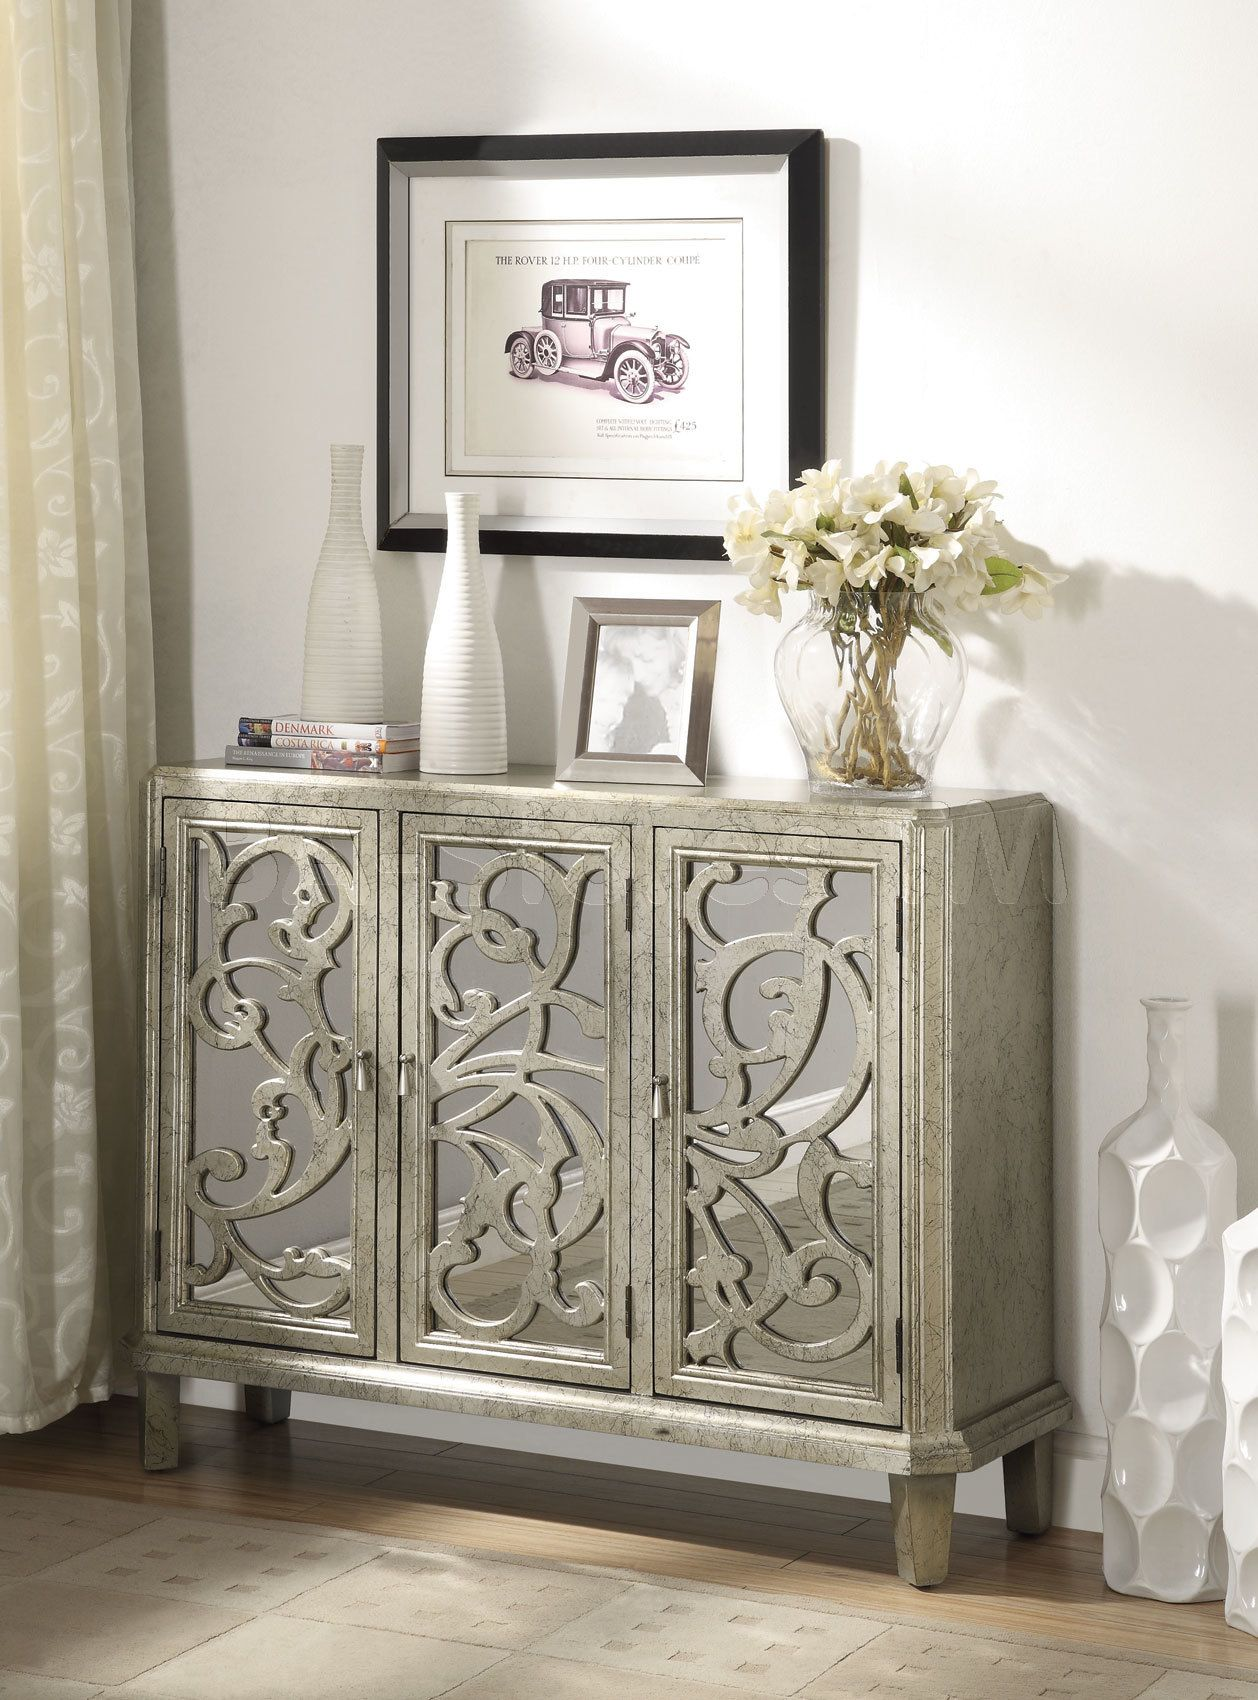 mirrored accent cabinet  antique silver  entrance statement  - mirrored accent cabinet  antique silver